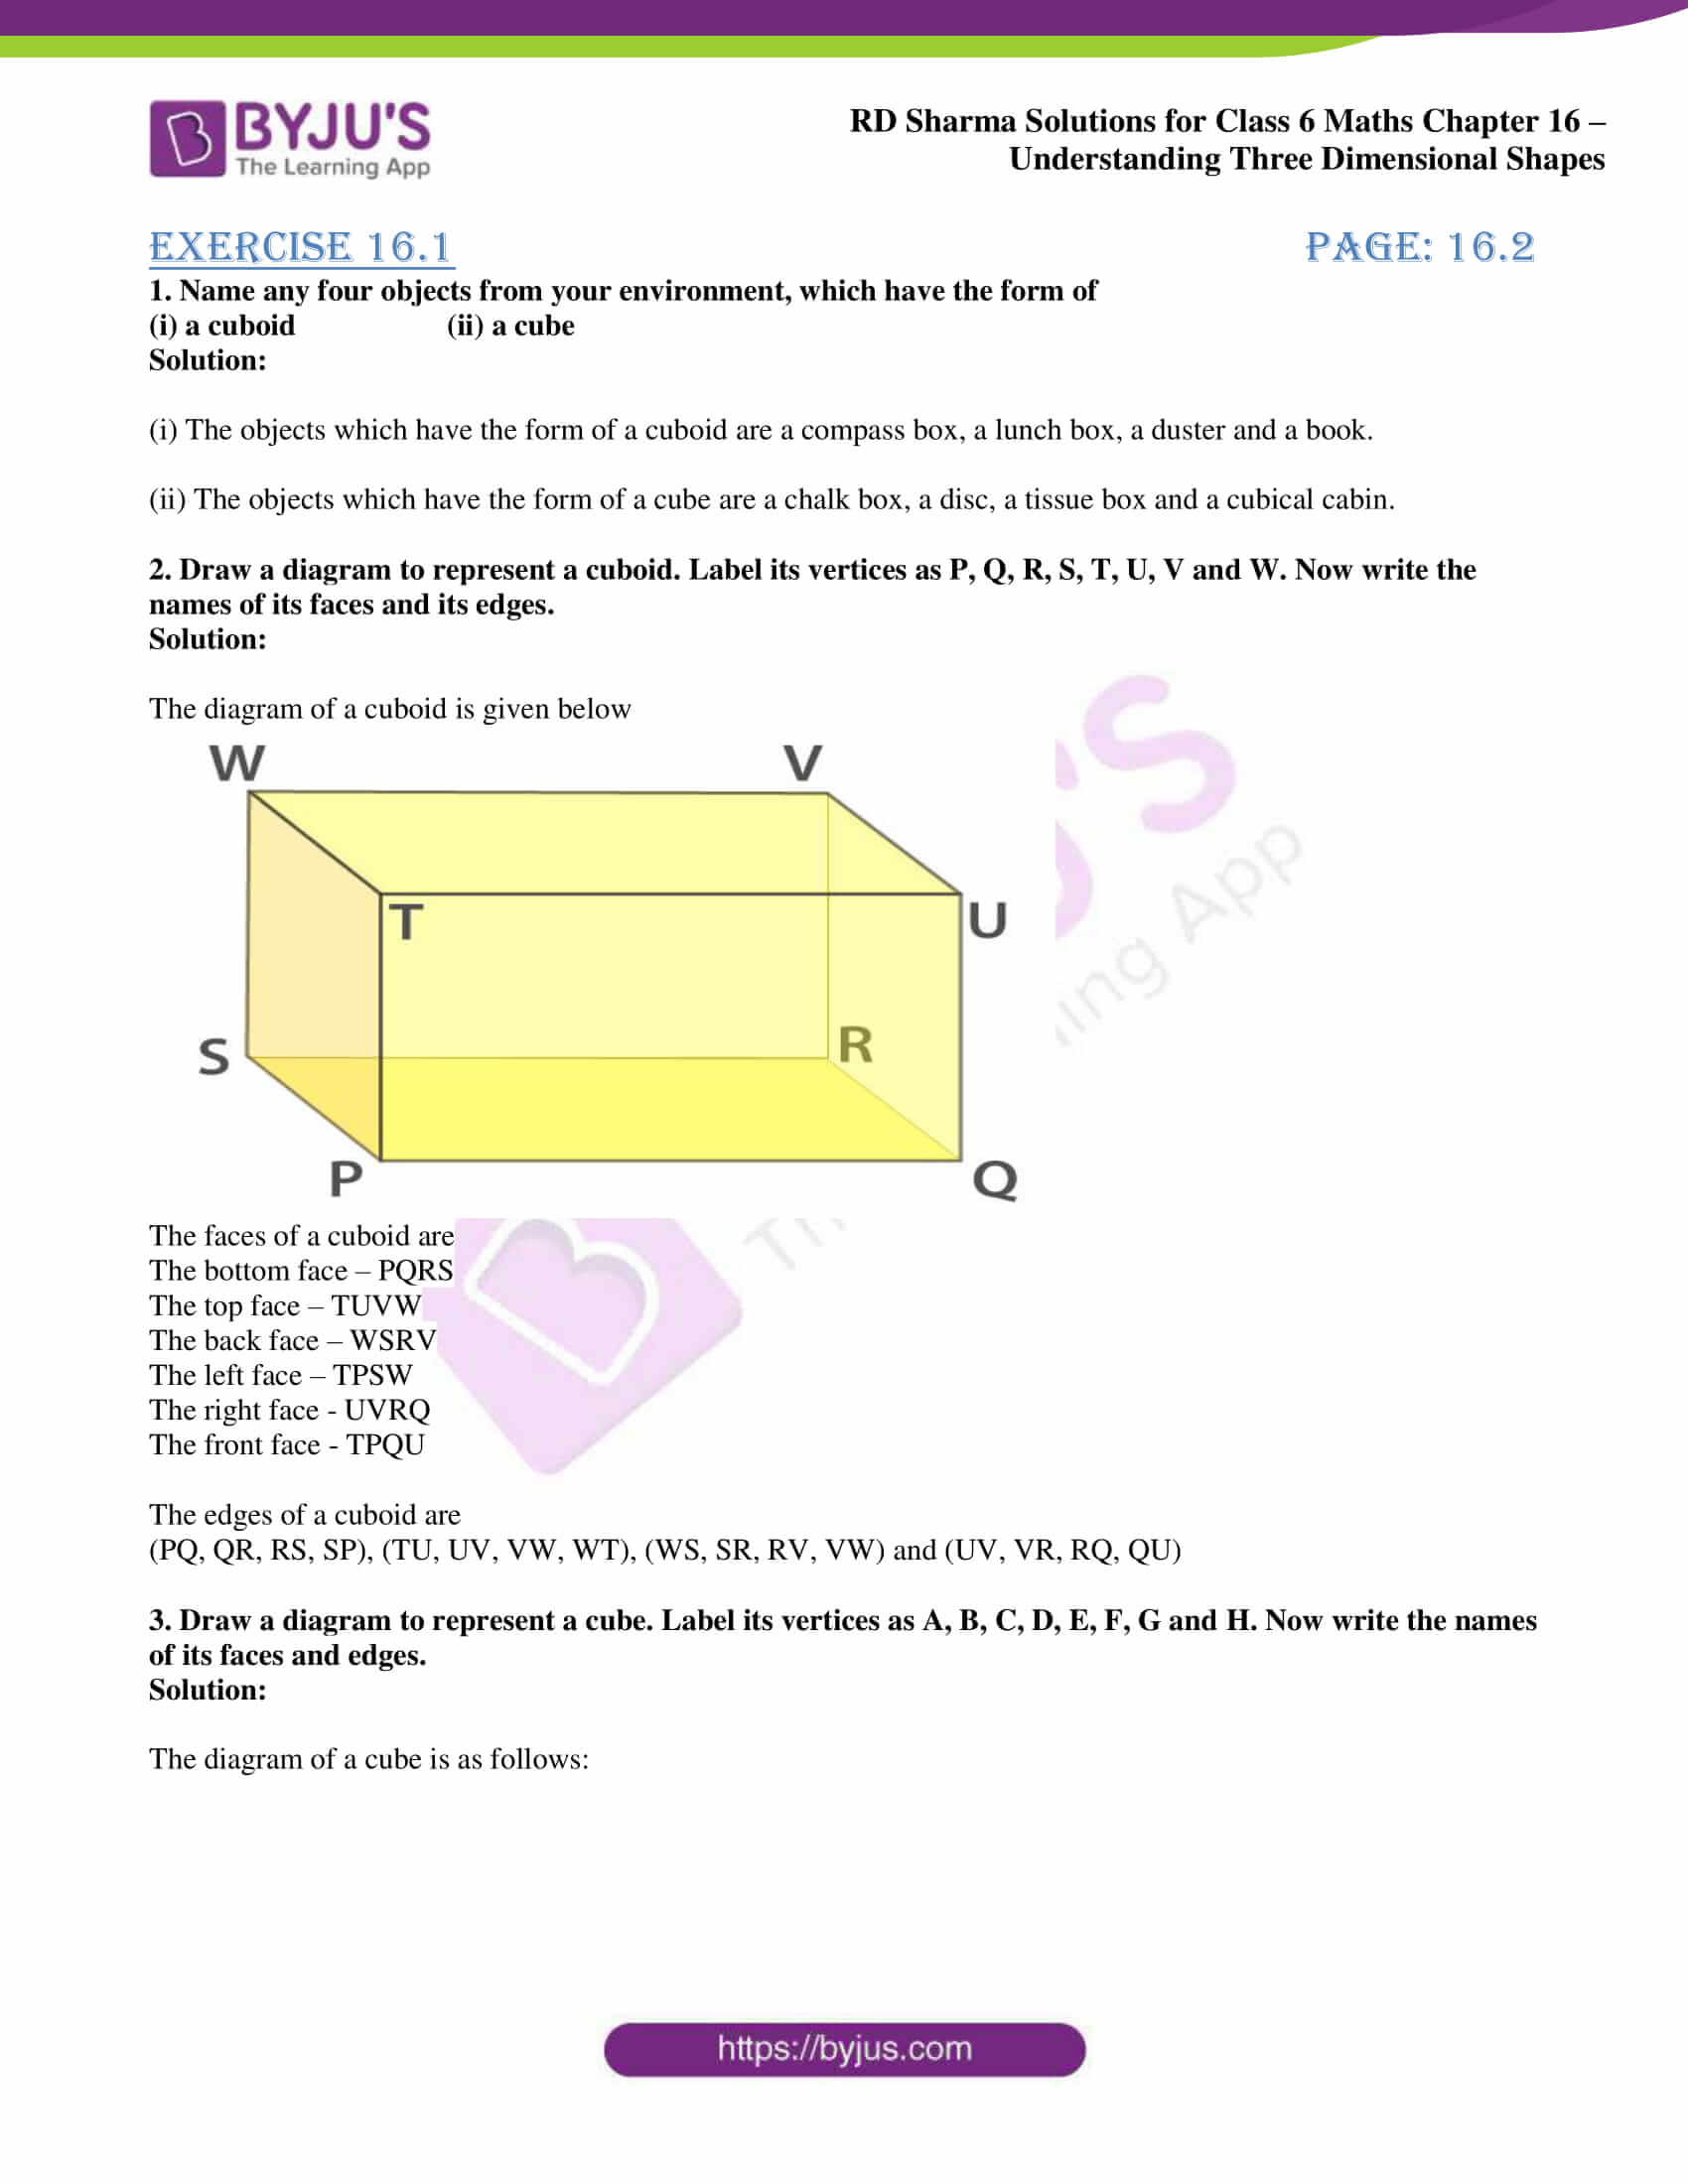 rd sharma solutions nov2020 class 6 maths chapter 16 exercise 1 1